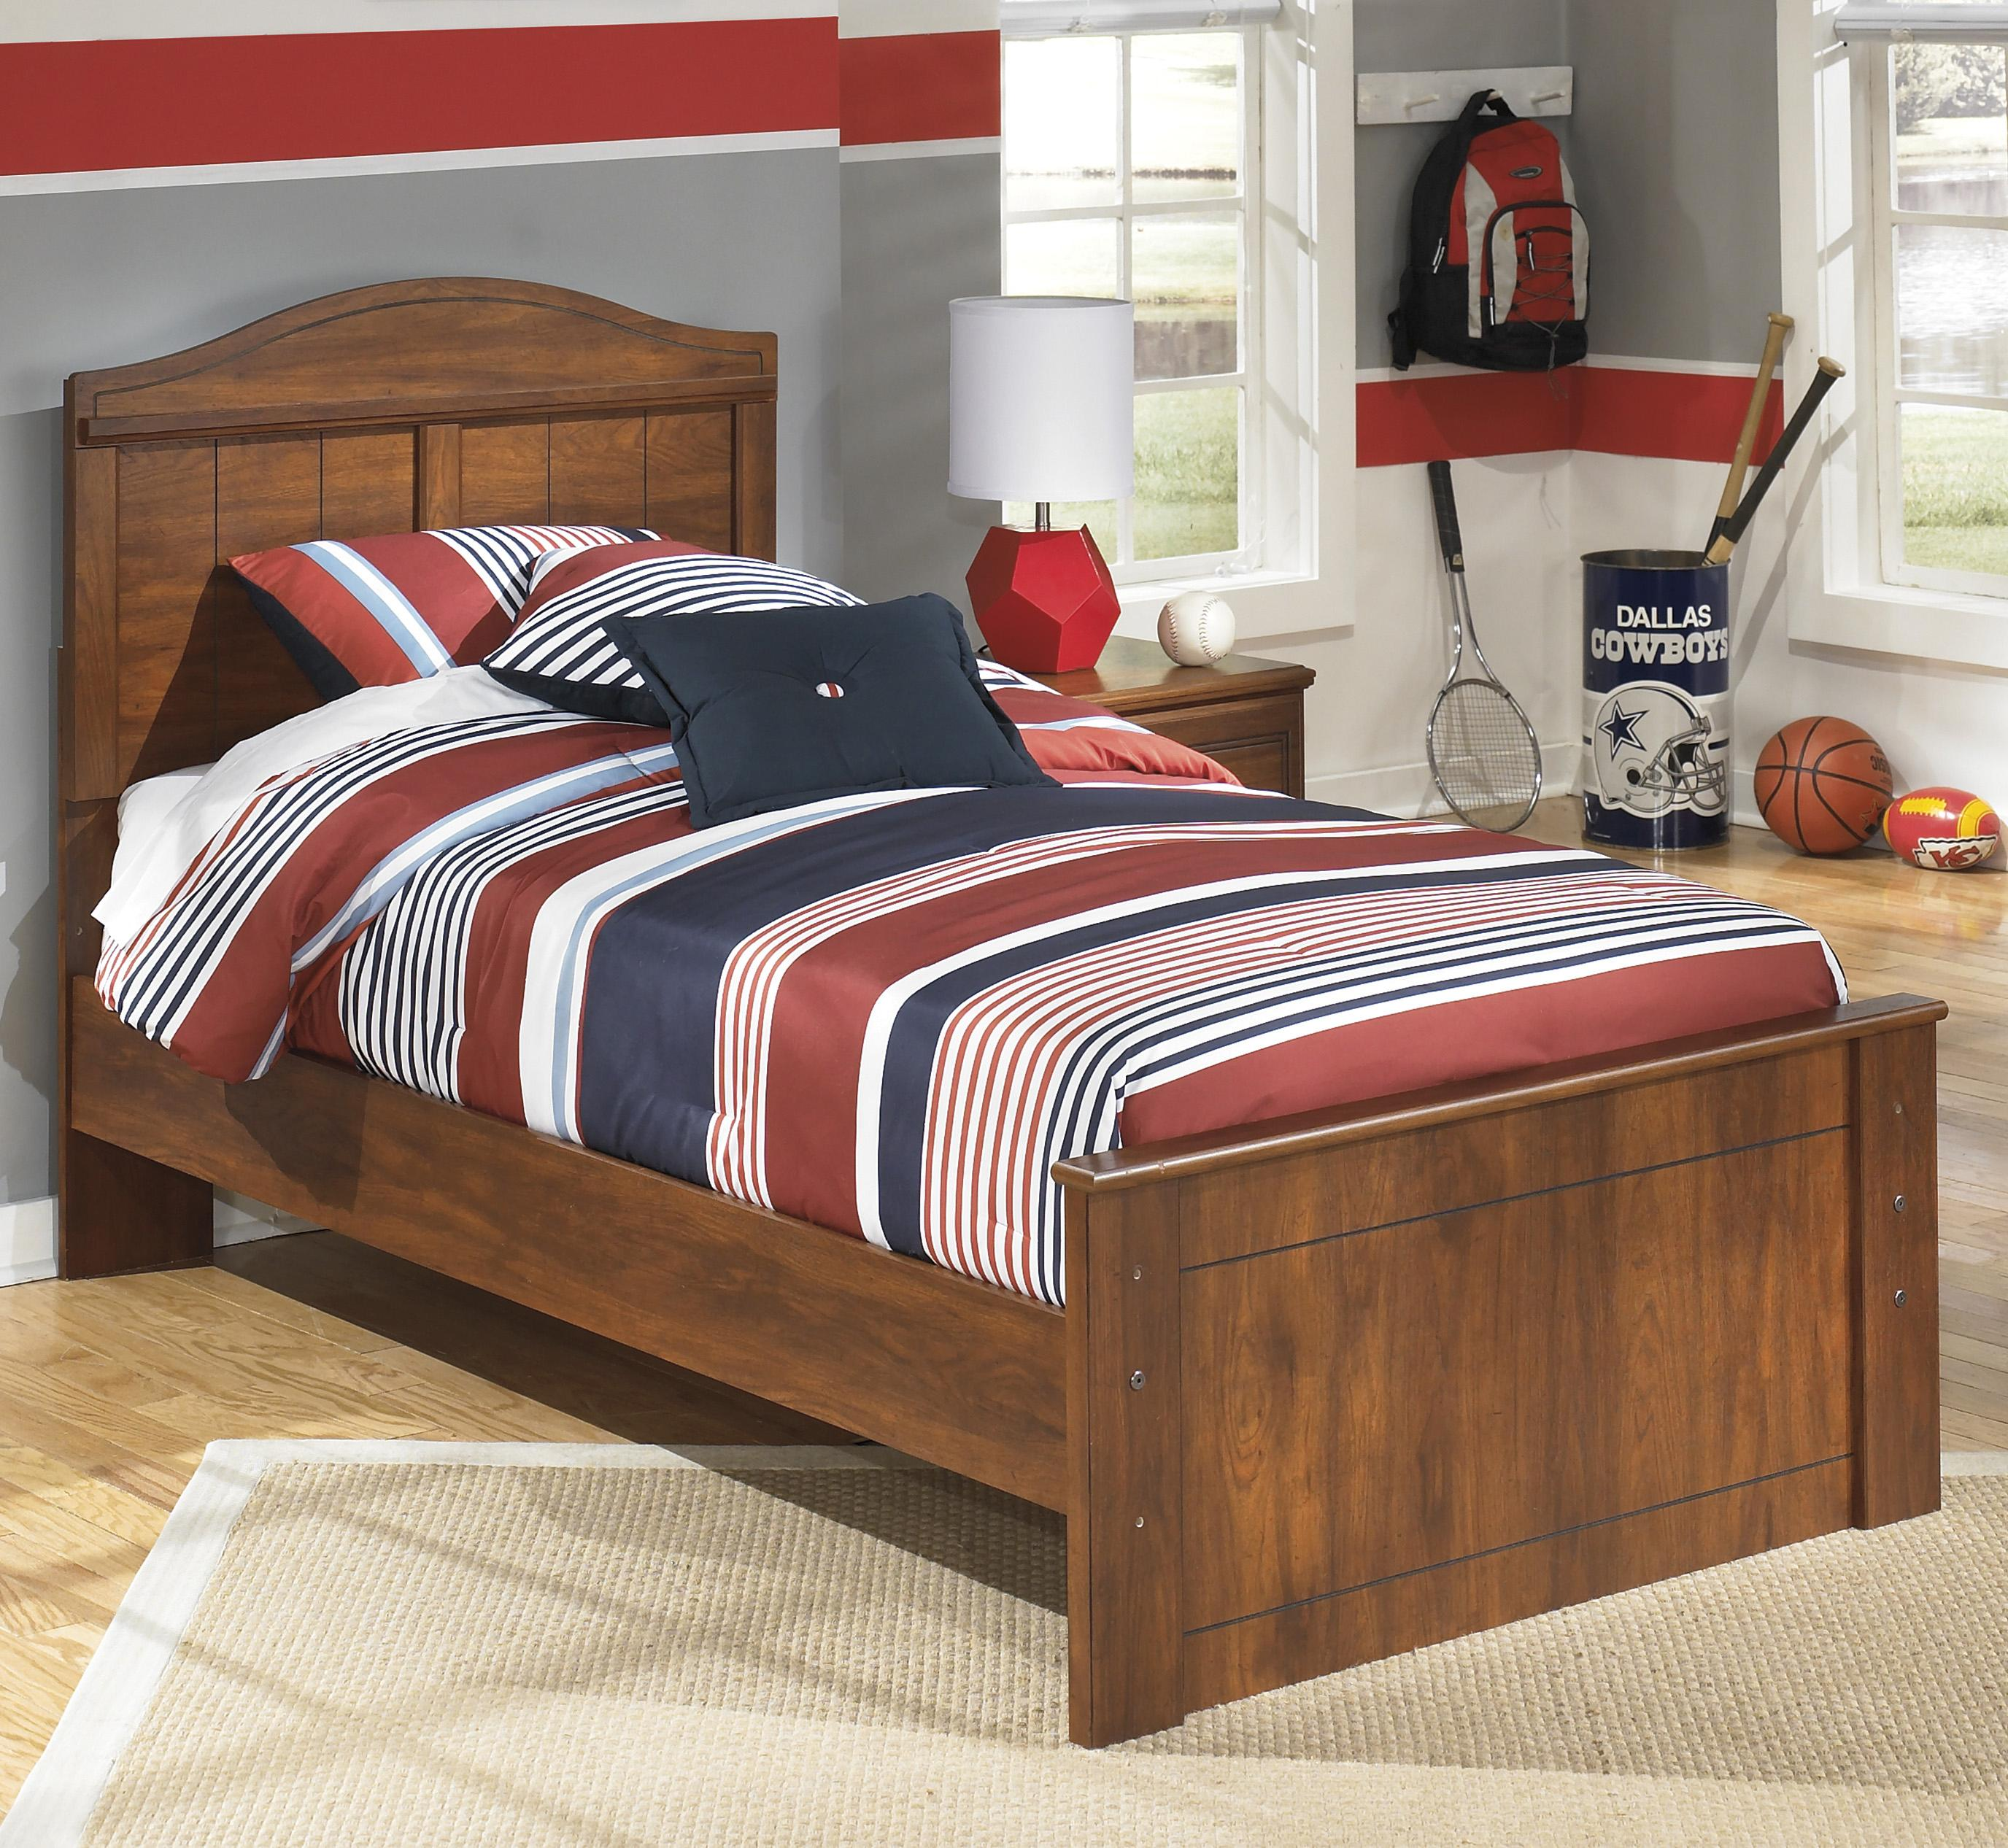 Signature Design by Ashley Barchan Twin Panel Bed - Item Number: B228-53+52+82